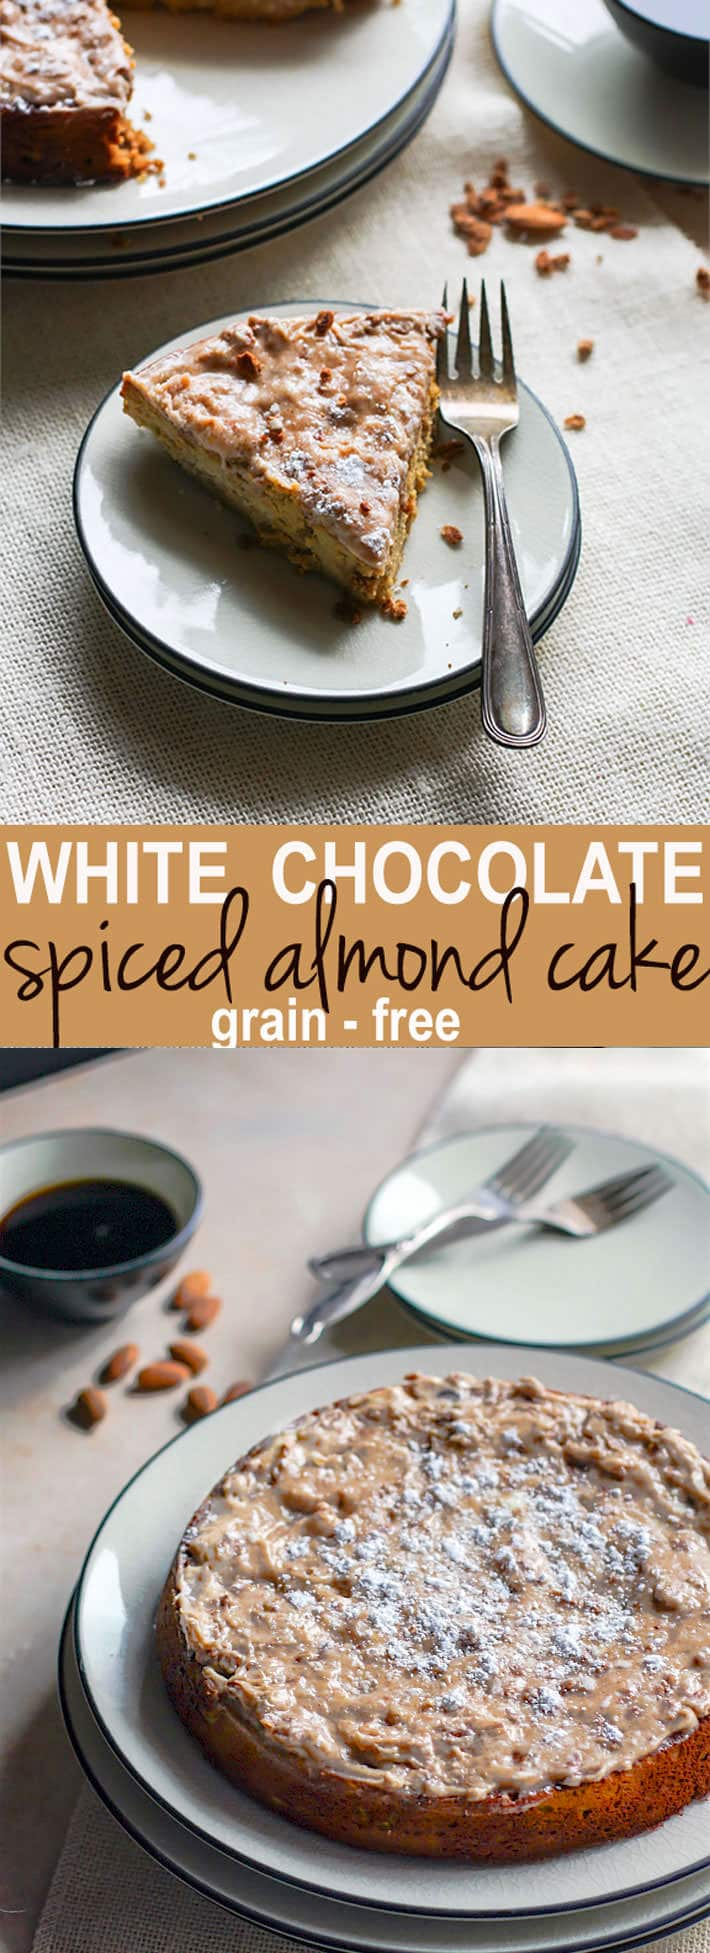 Grain Free White Chocolate Spiced Almond Cake! A healthy holiday twist on the classic almond cake! Cinnamon Spiced almond cake with melted white chocolate and a cinnamon cream cheese topping.Taste so decadent but is actually pretty healthy and easy to make. A perfect moist cake recipe for those looking to enjoy gluten free desserts. Really! Go ahead, enjoy!